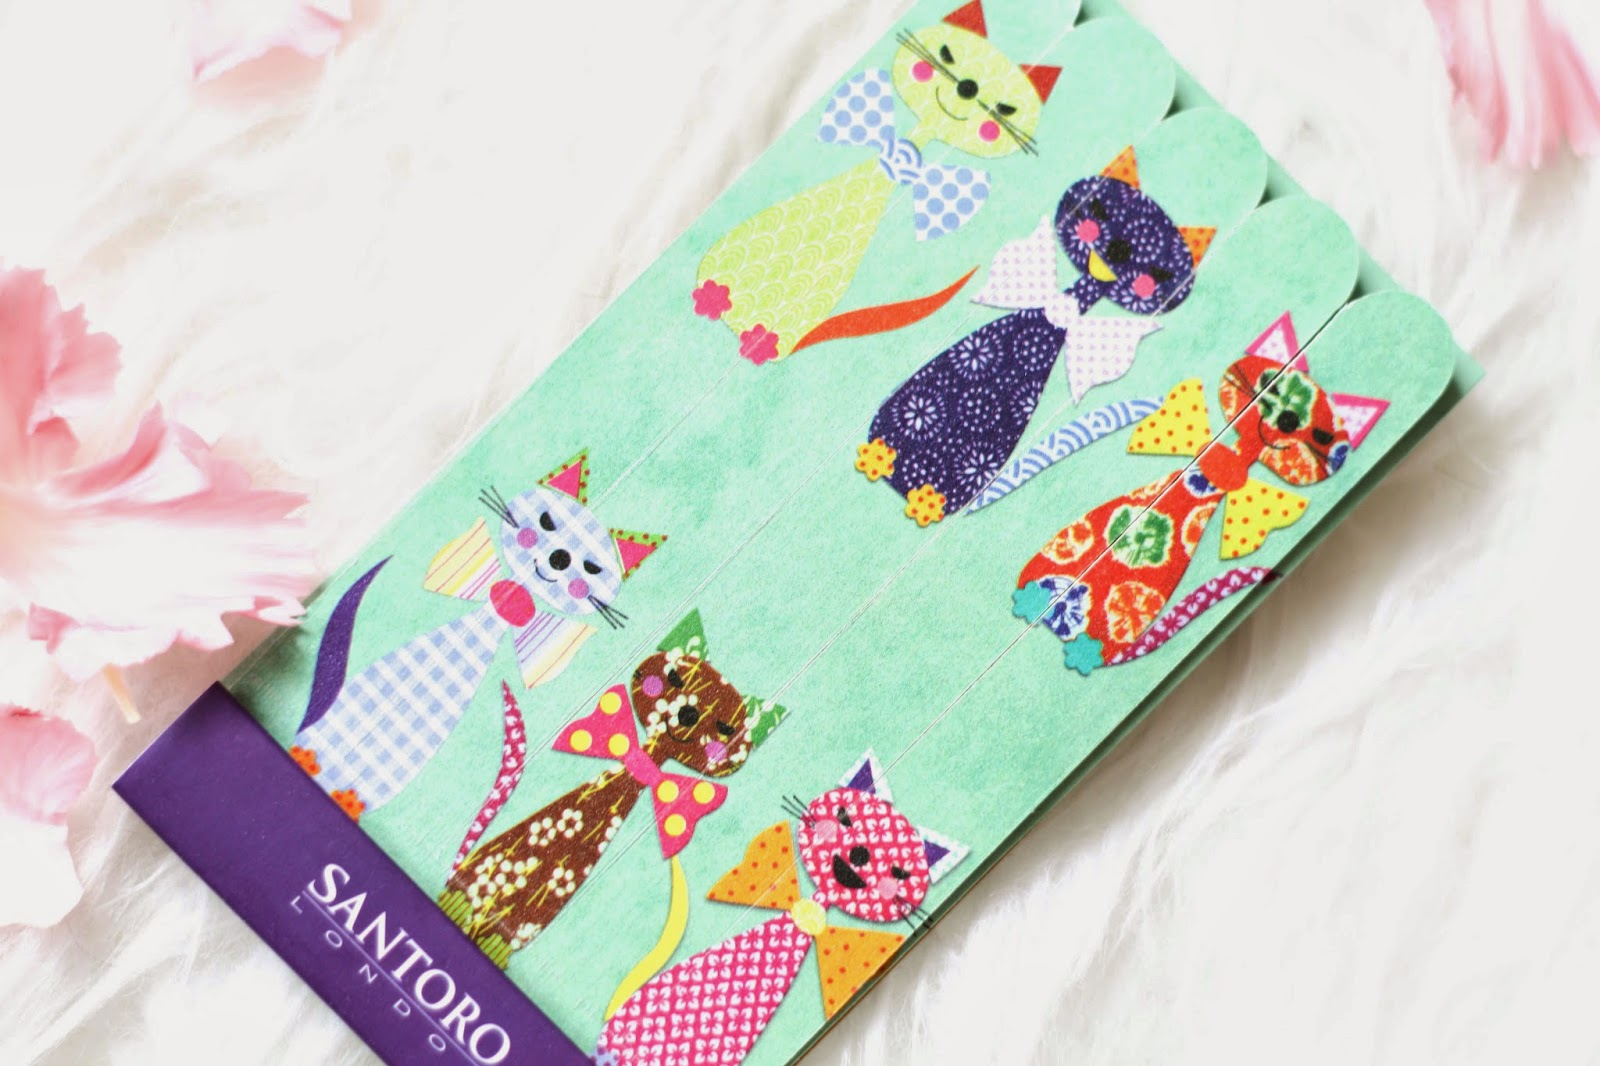 Cute emery boards with cat print from Santoro London